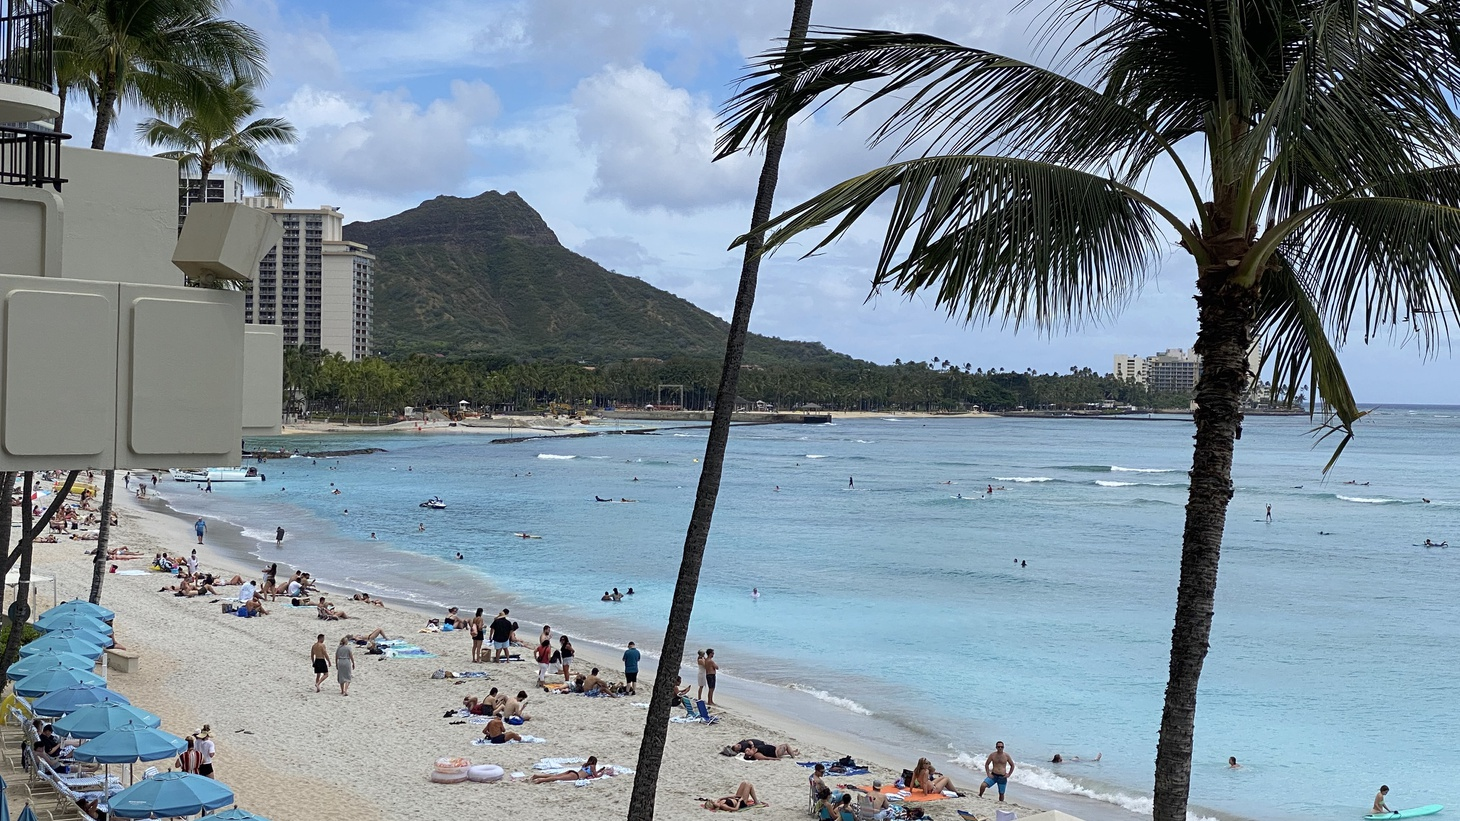 Oahu, home of the popular Waikiki Beach, will require proof of vaccination for restaurants, bars, and other indoor businesses starting September 13.